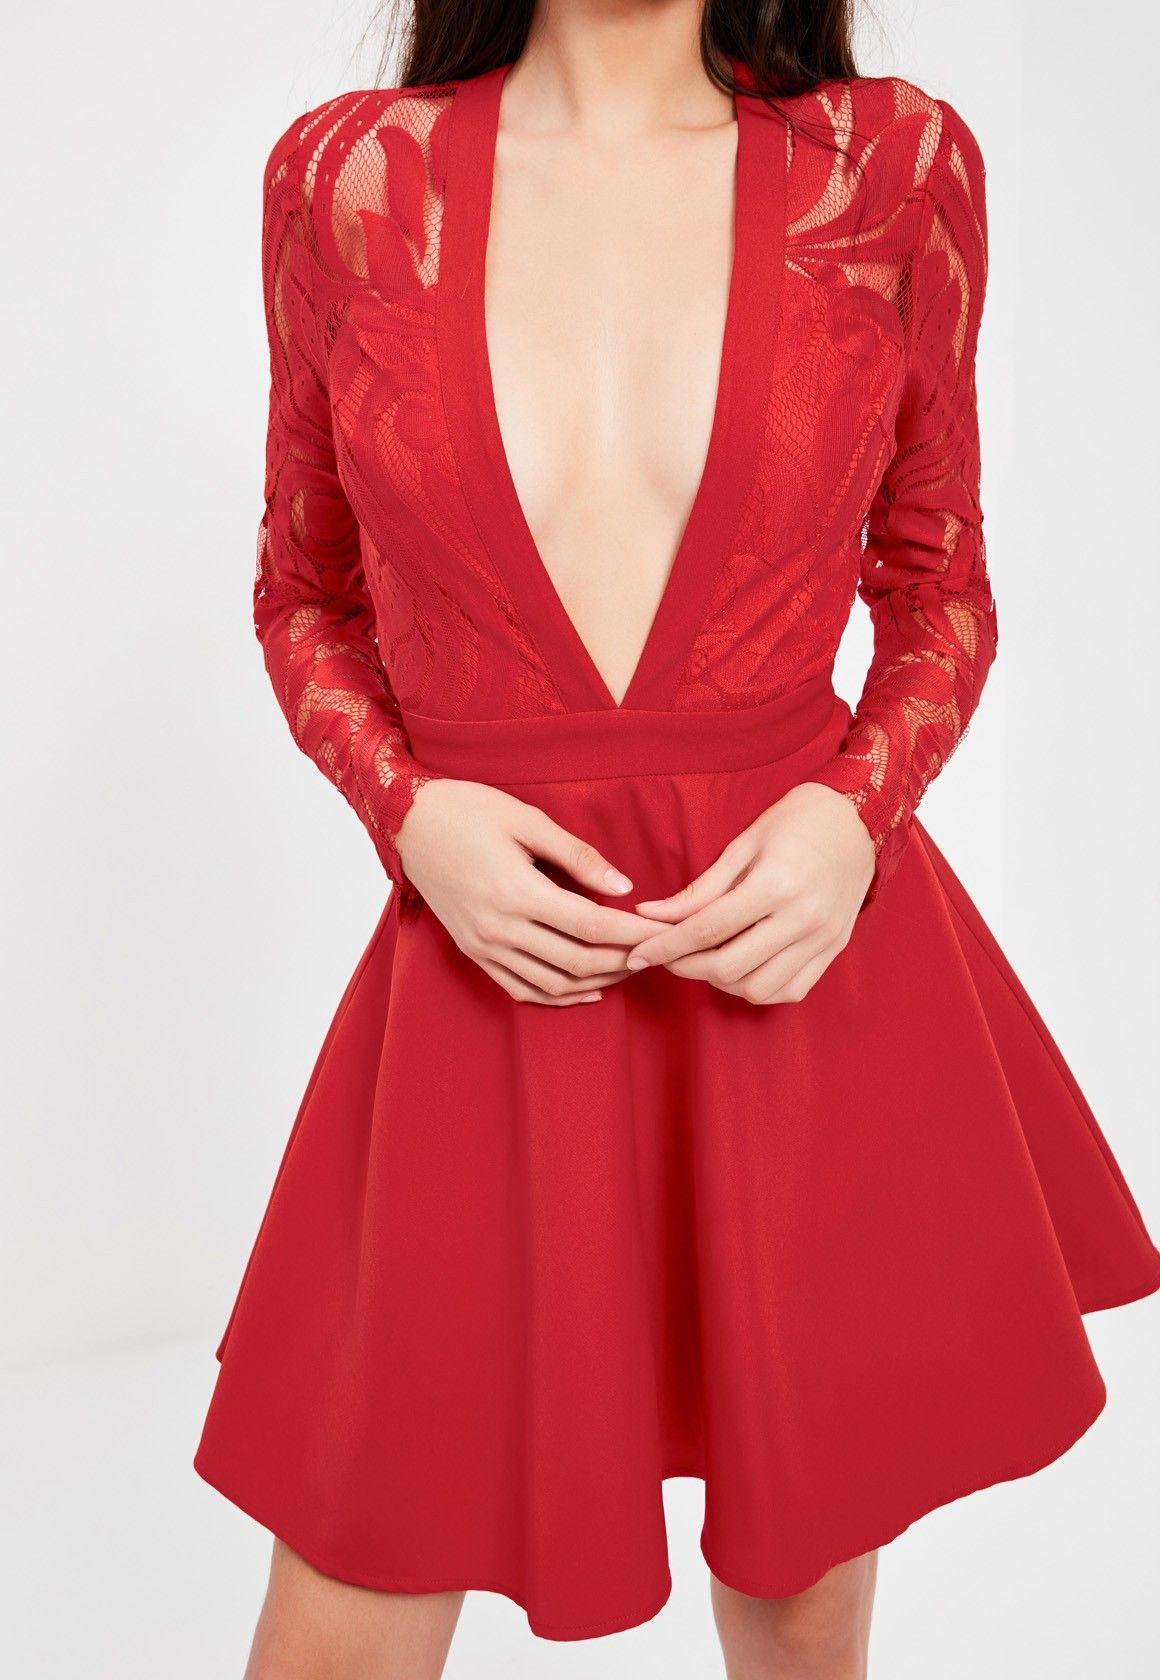 Red Lace Long Sleeve Plunge Skater Dress Missguided Lace Dress Plunge Skater Dress Dresses [ 1680 x 1160 Pixel ]